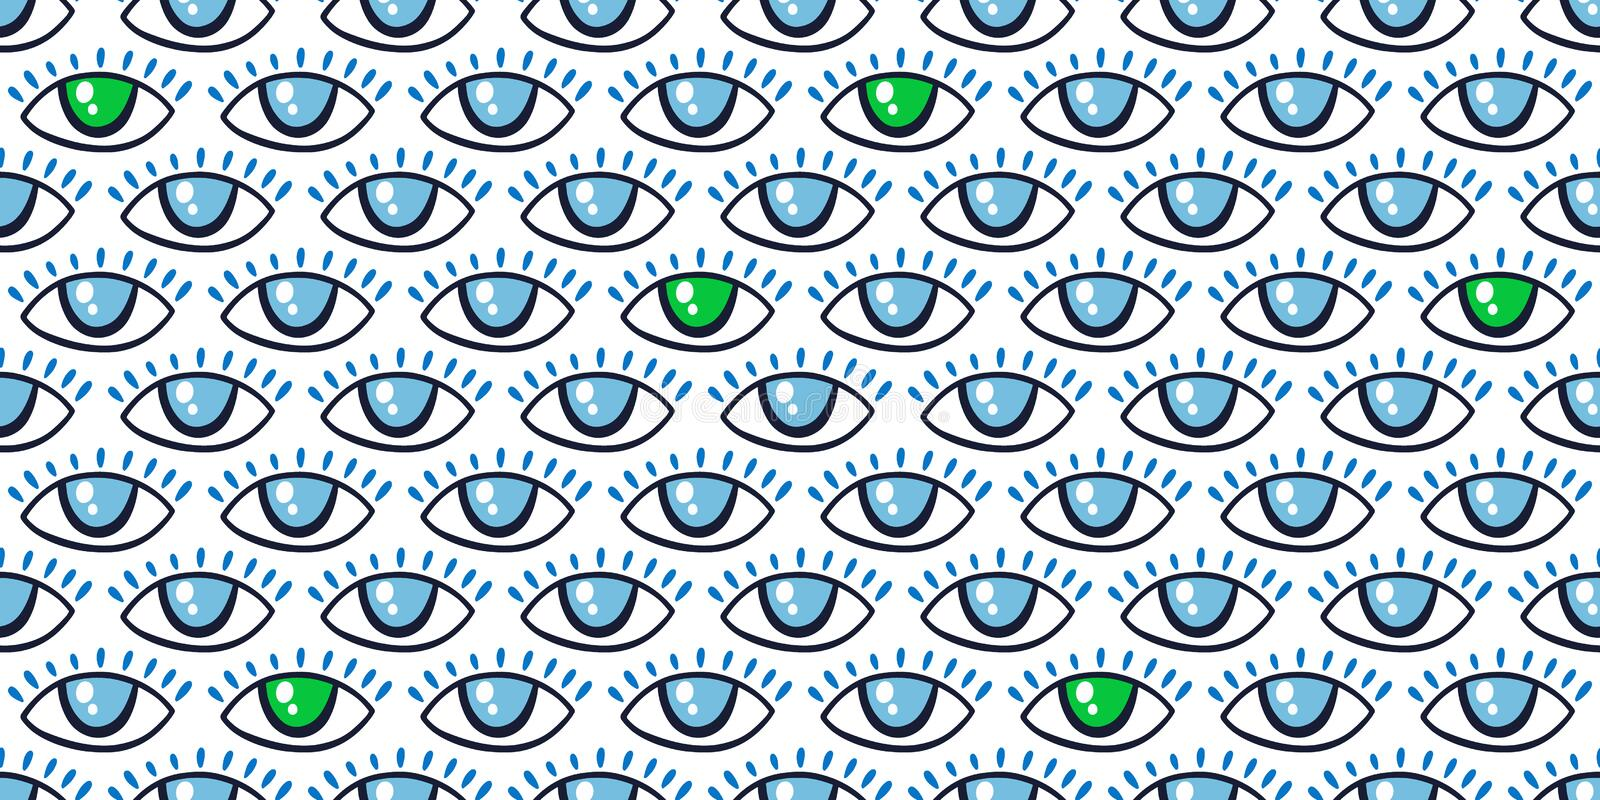 Seamless pattern with eyes magical pattern. Mystical icon hand drawn print. Cartoon style, sign esoteric, inspiration eye. Vector illustration royalty free stock images